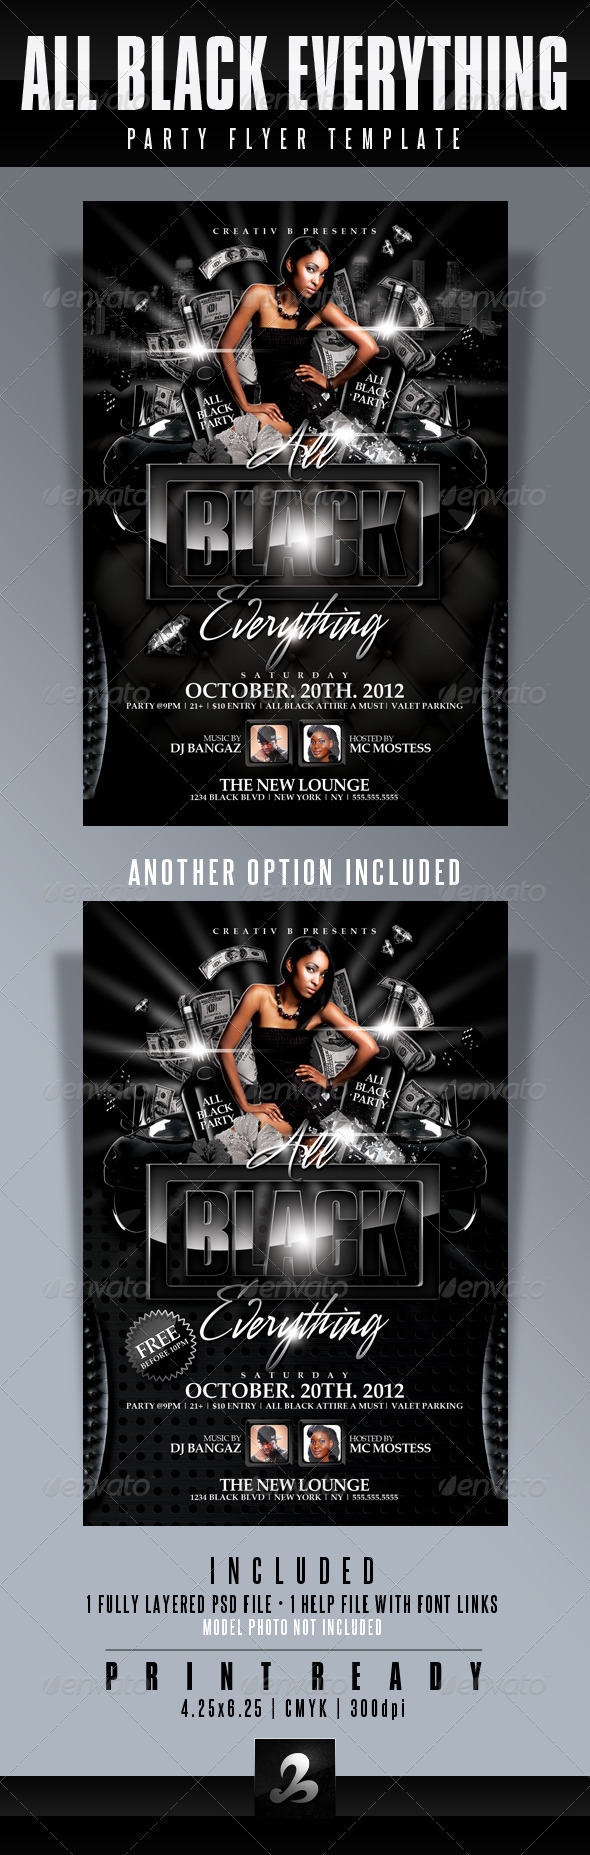 GraphicRiver All Black Everything Party Flyer Template 2822982